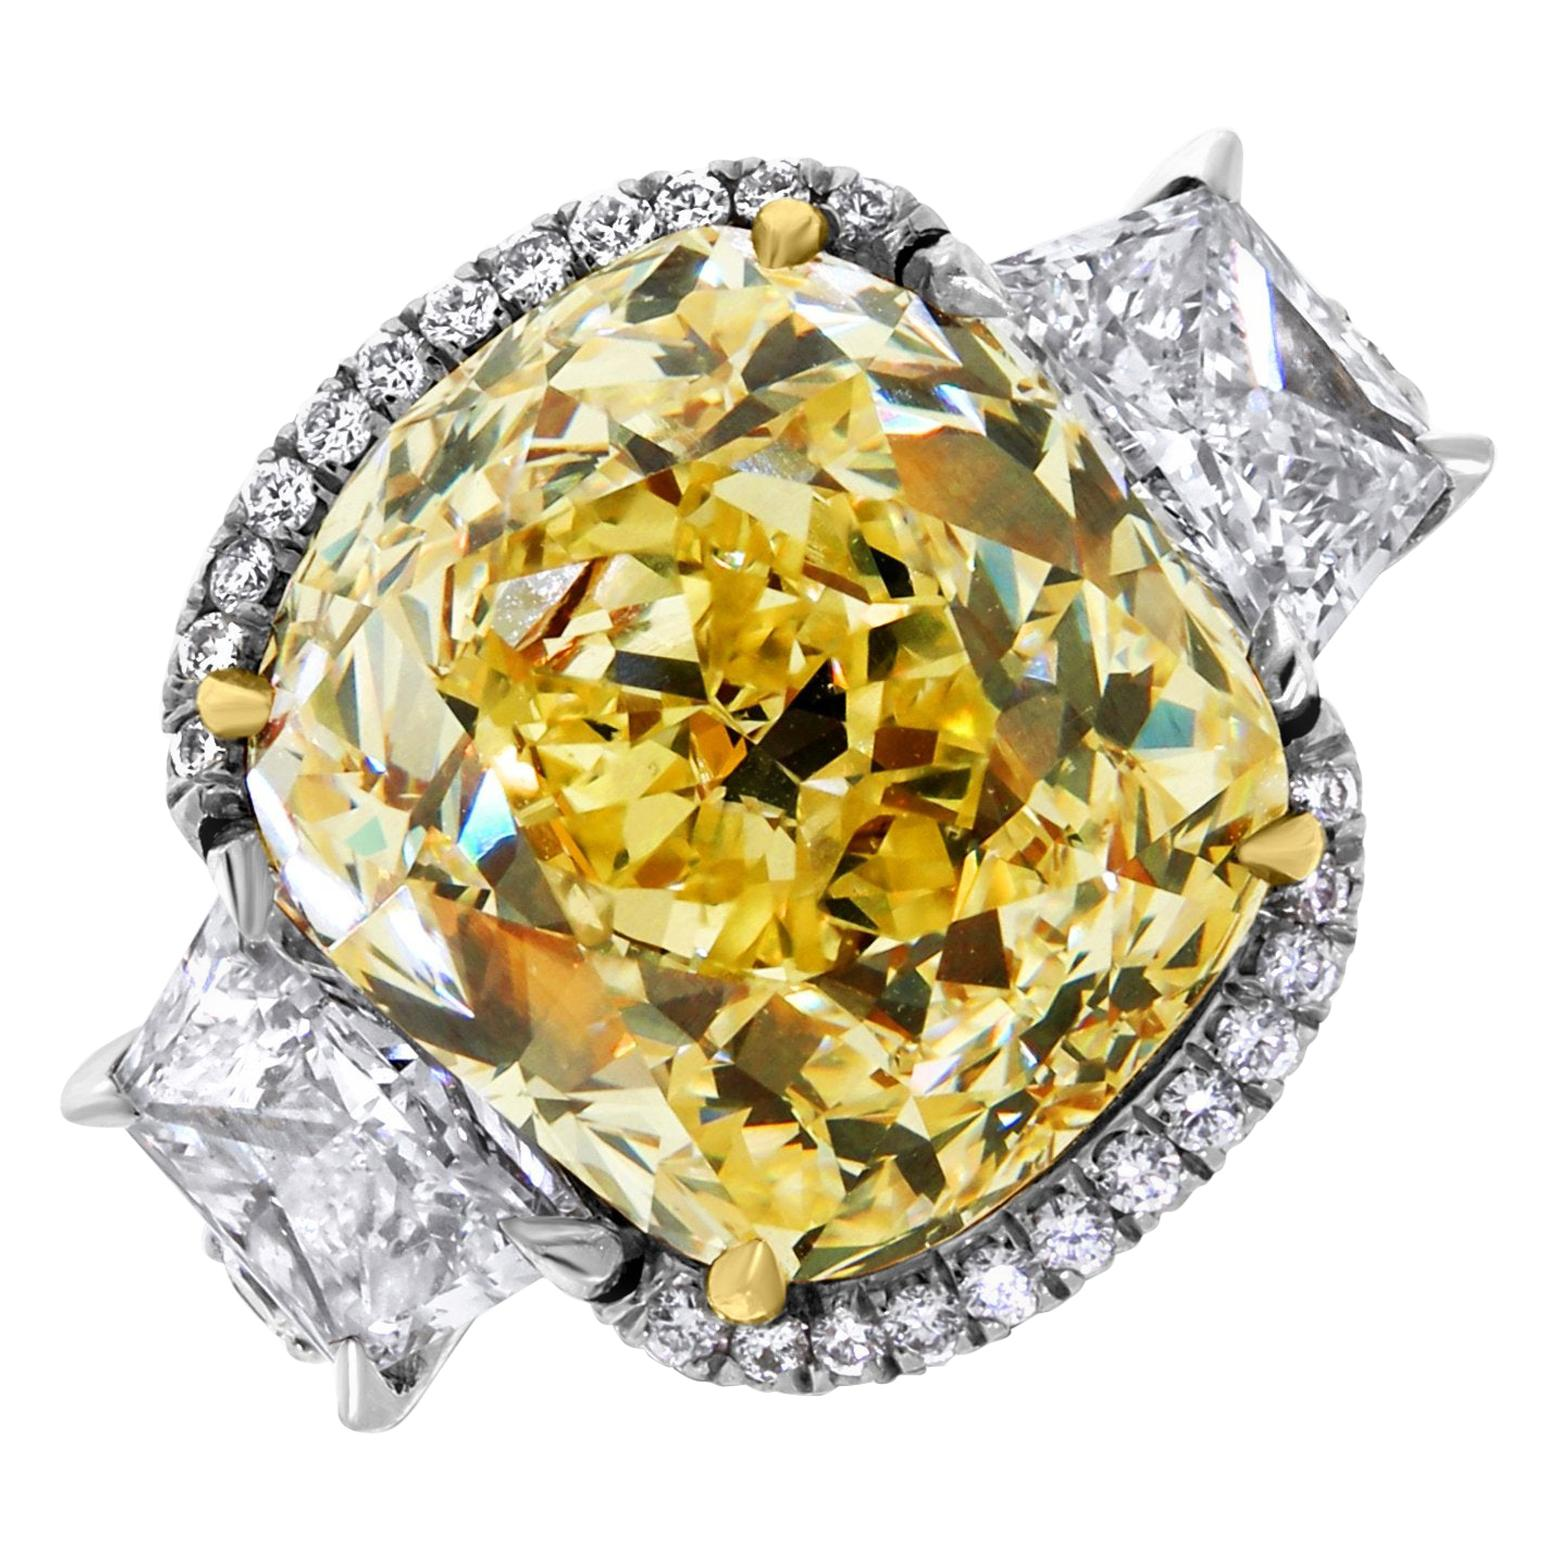 Ethonica GIA Certified Old Cut Fancy Yellow Cushion Diamond Ring in Platinum